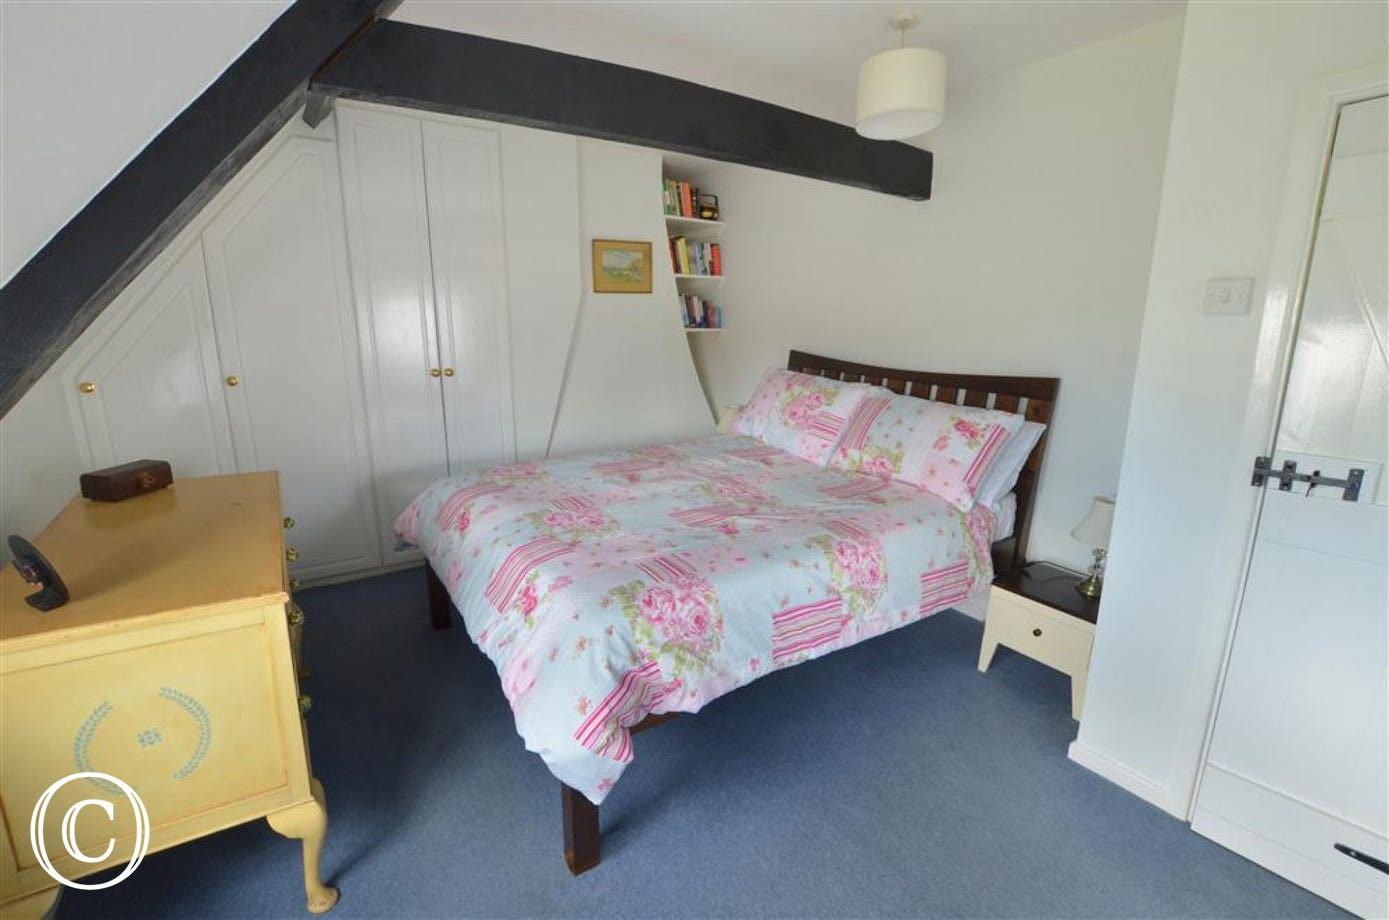 View of bedroom 1 with double bed dressed in pretty bedlinen, dressing table and built in cupboards under eaves.